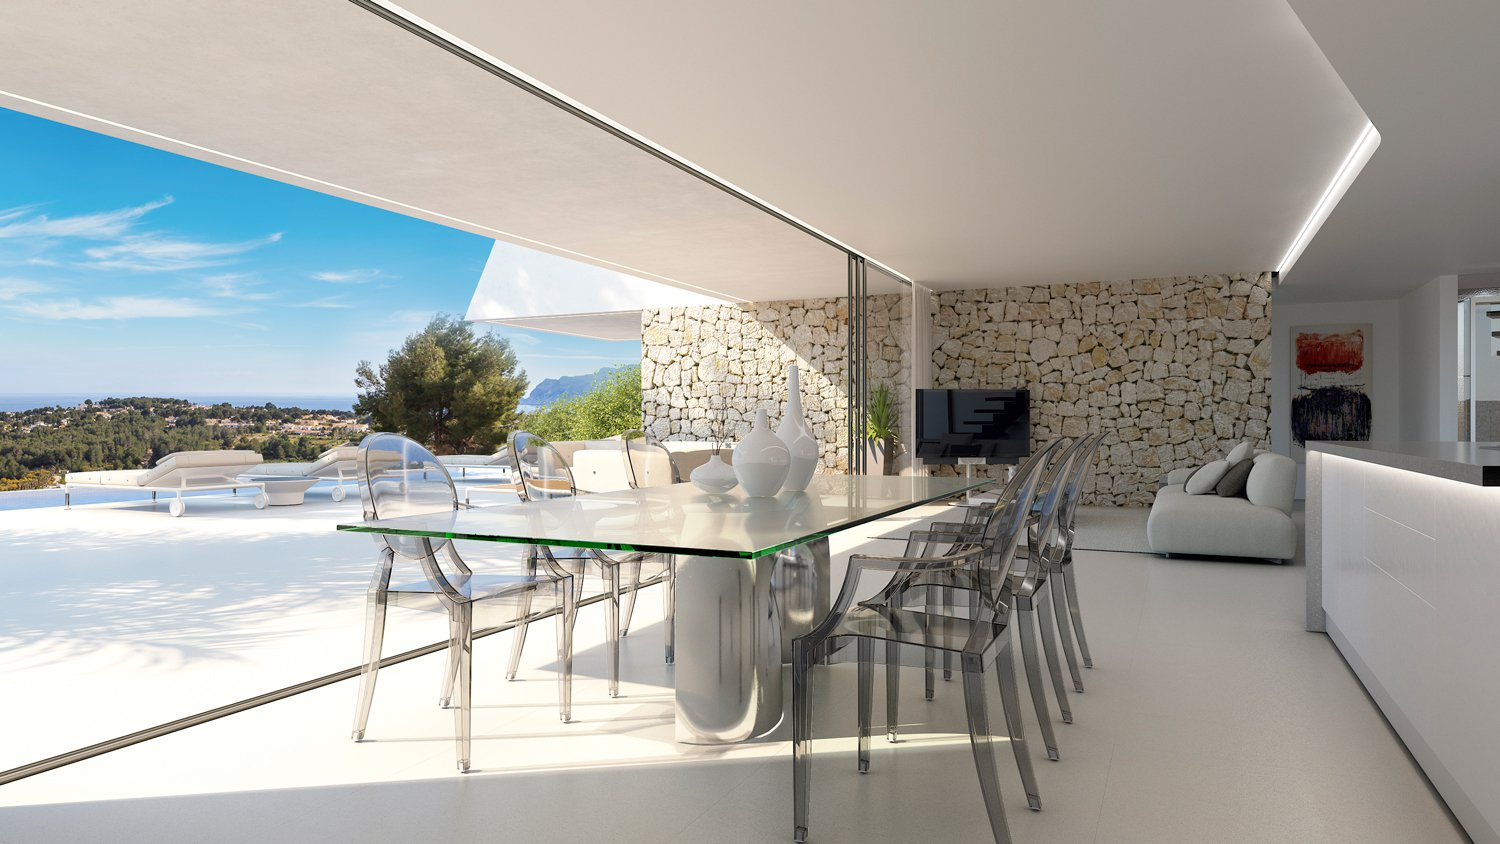 Very nice luxury villa in Moraira